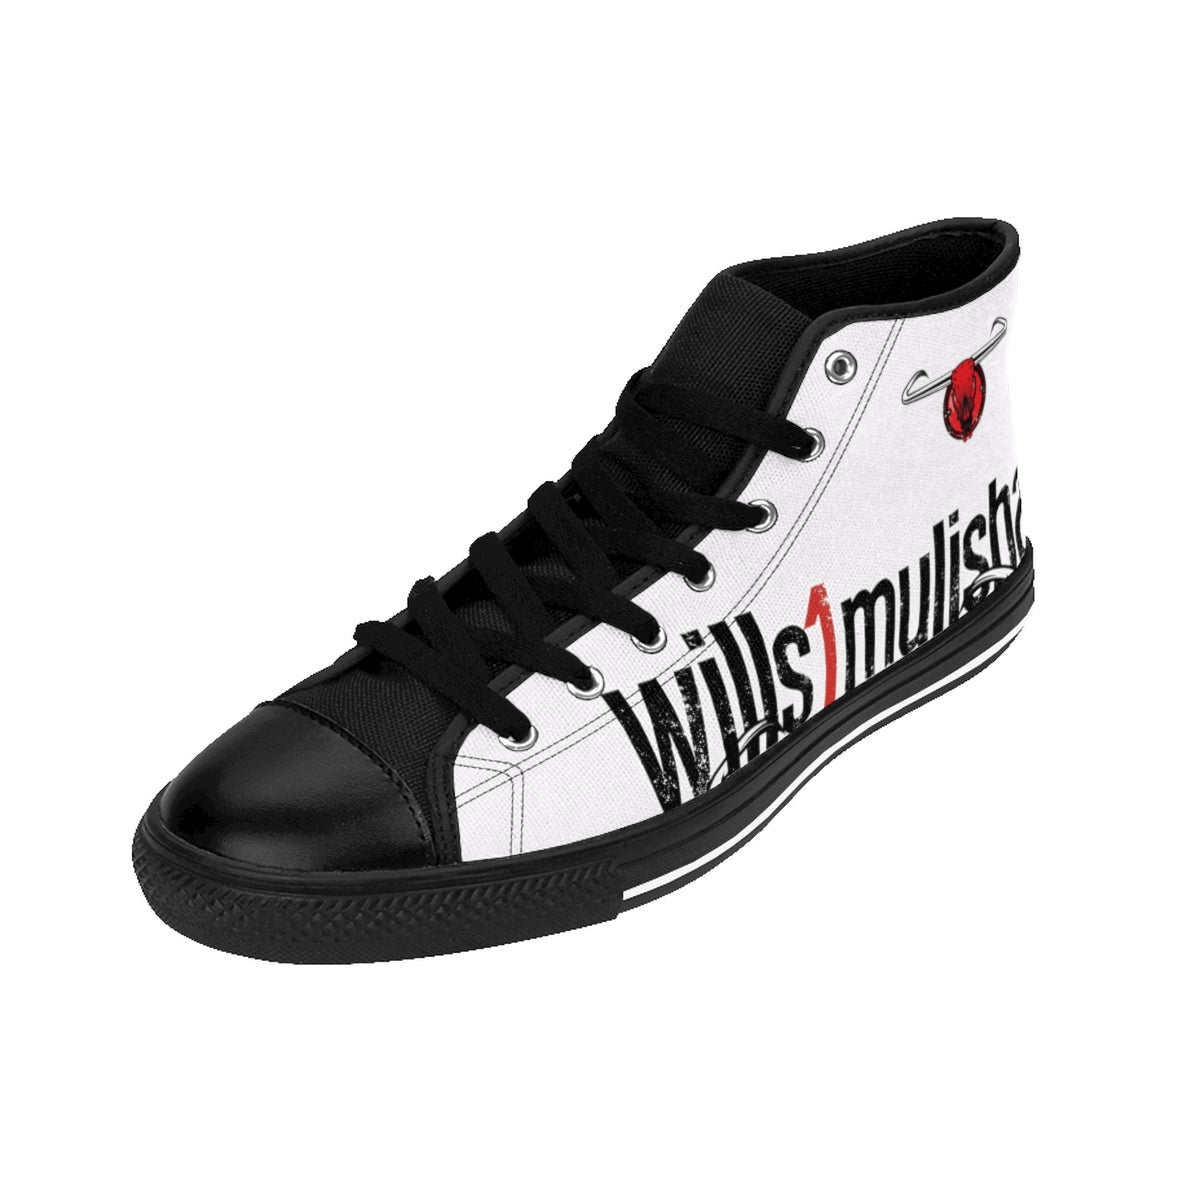 wills1mulisha Men's High-top Canvas Sneakers, White